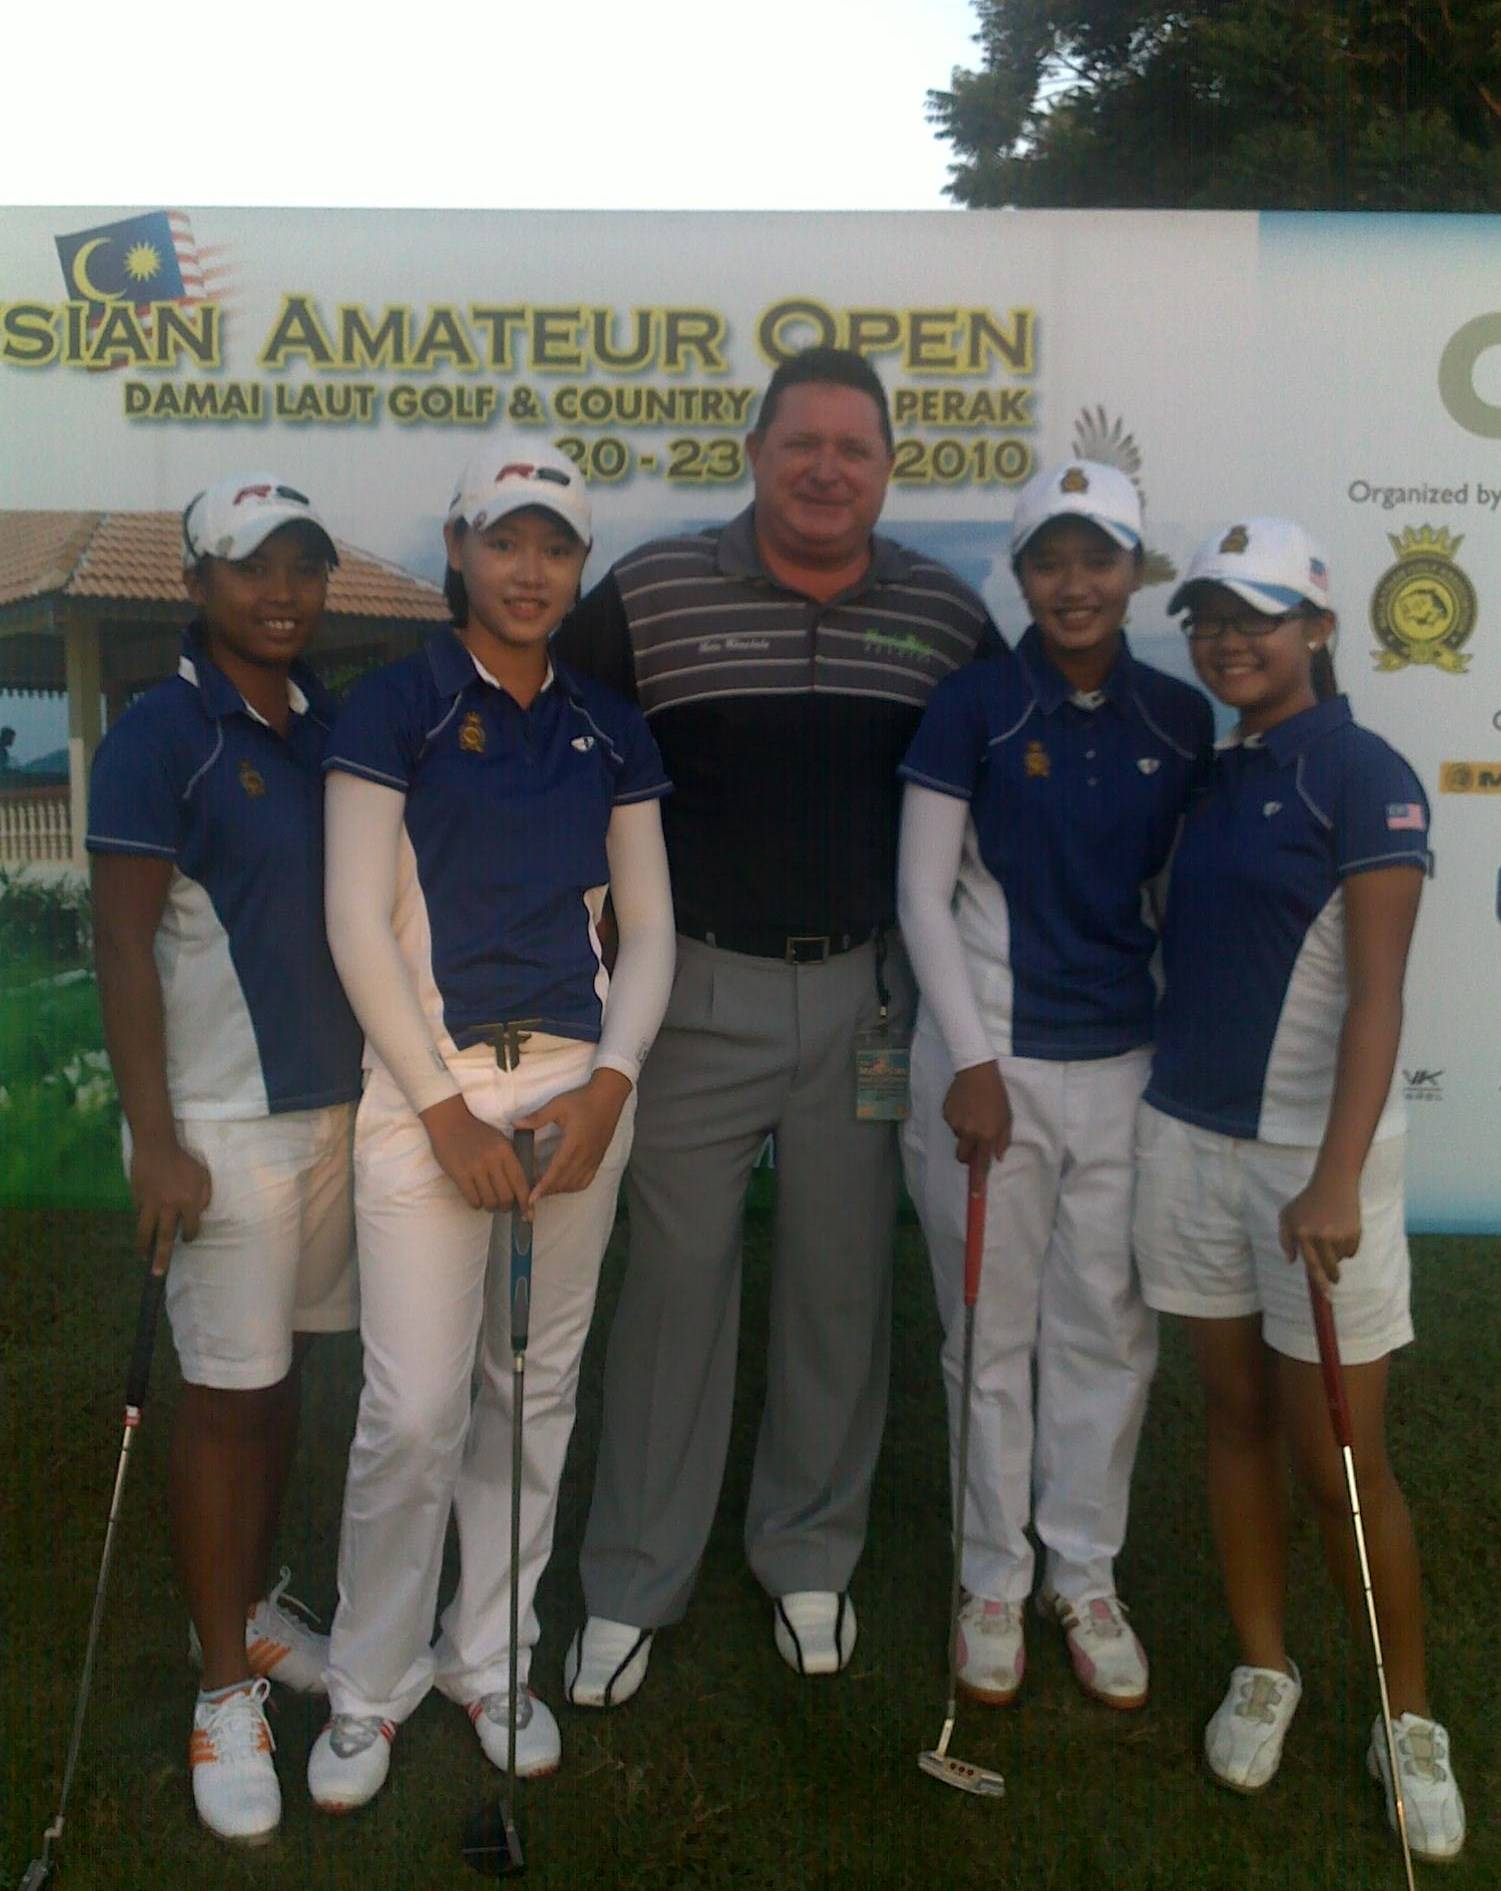 https://mediaprocessor.websimages.com//https://pacificgolfacademy.webs.com/photos/Academy-Students/MAO%20Me%20&%20Girls.jpg